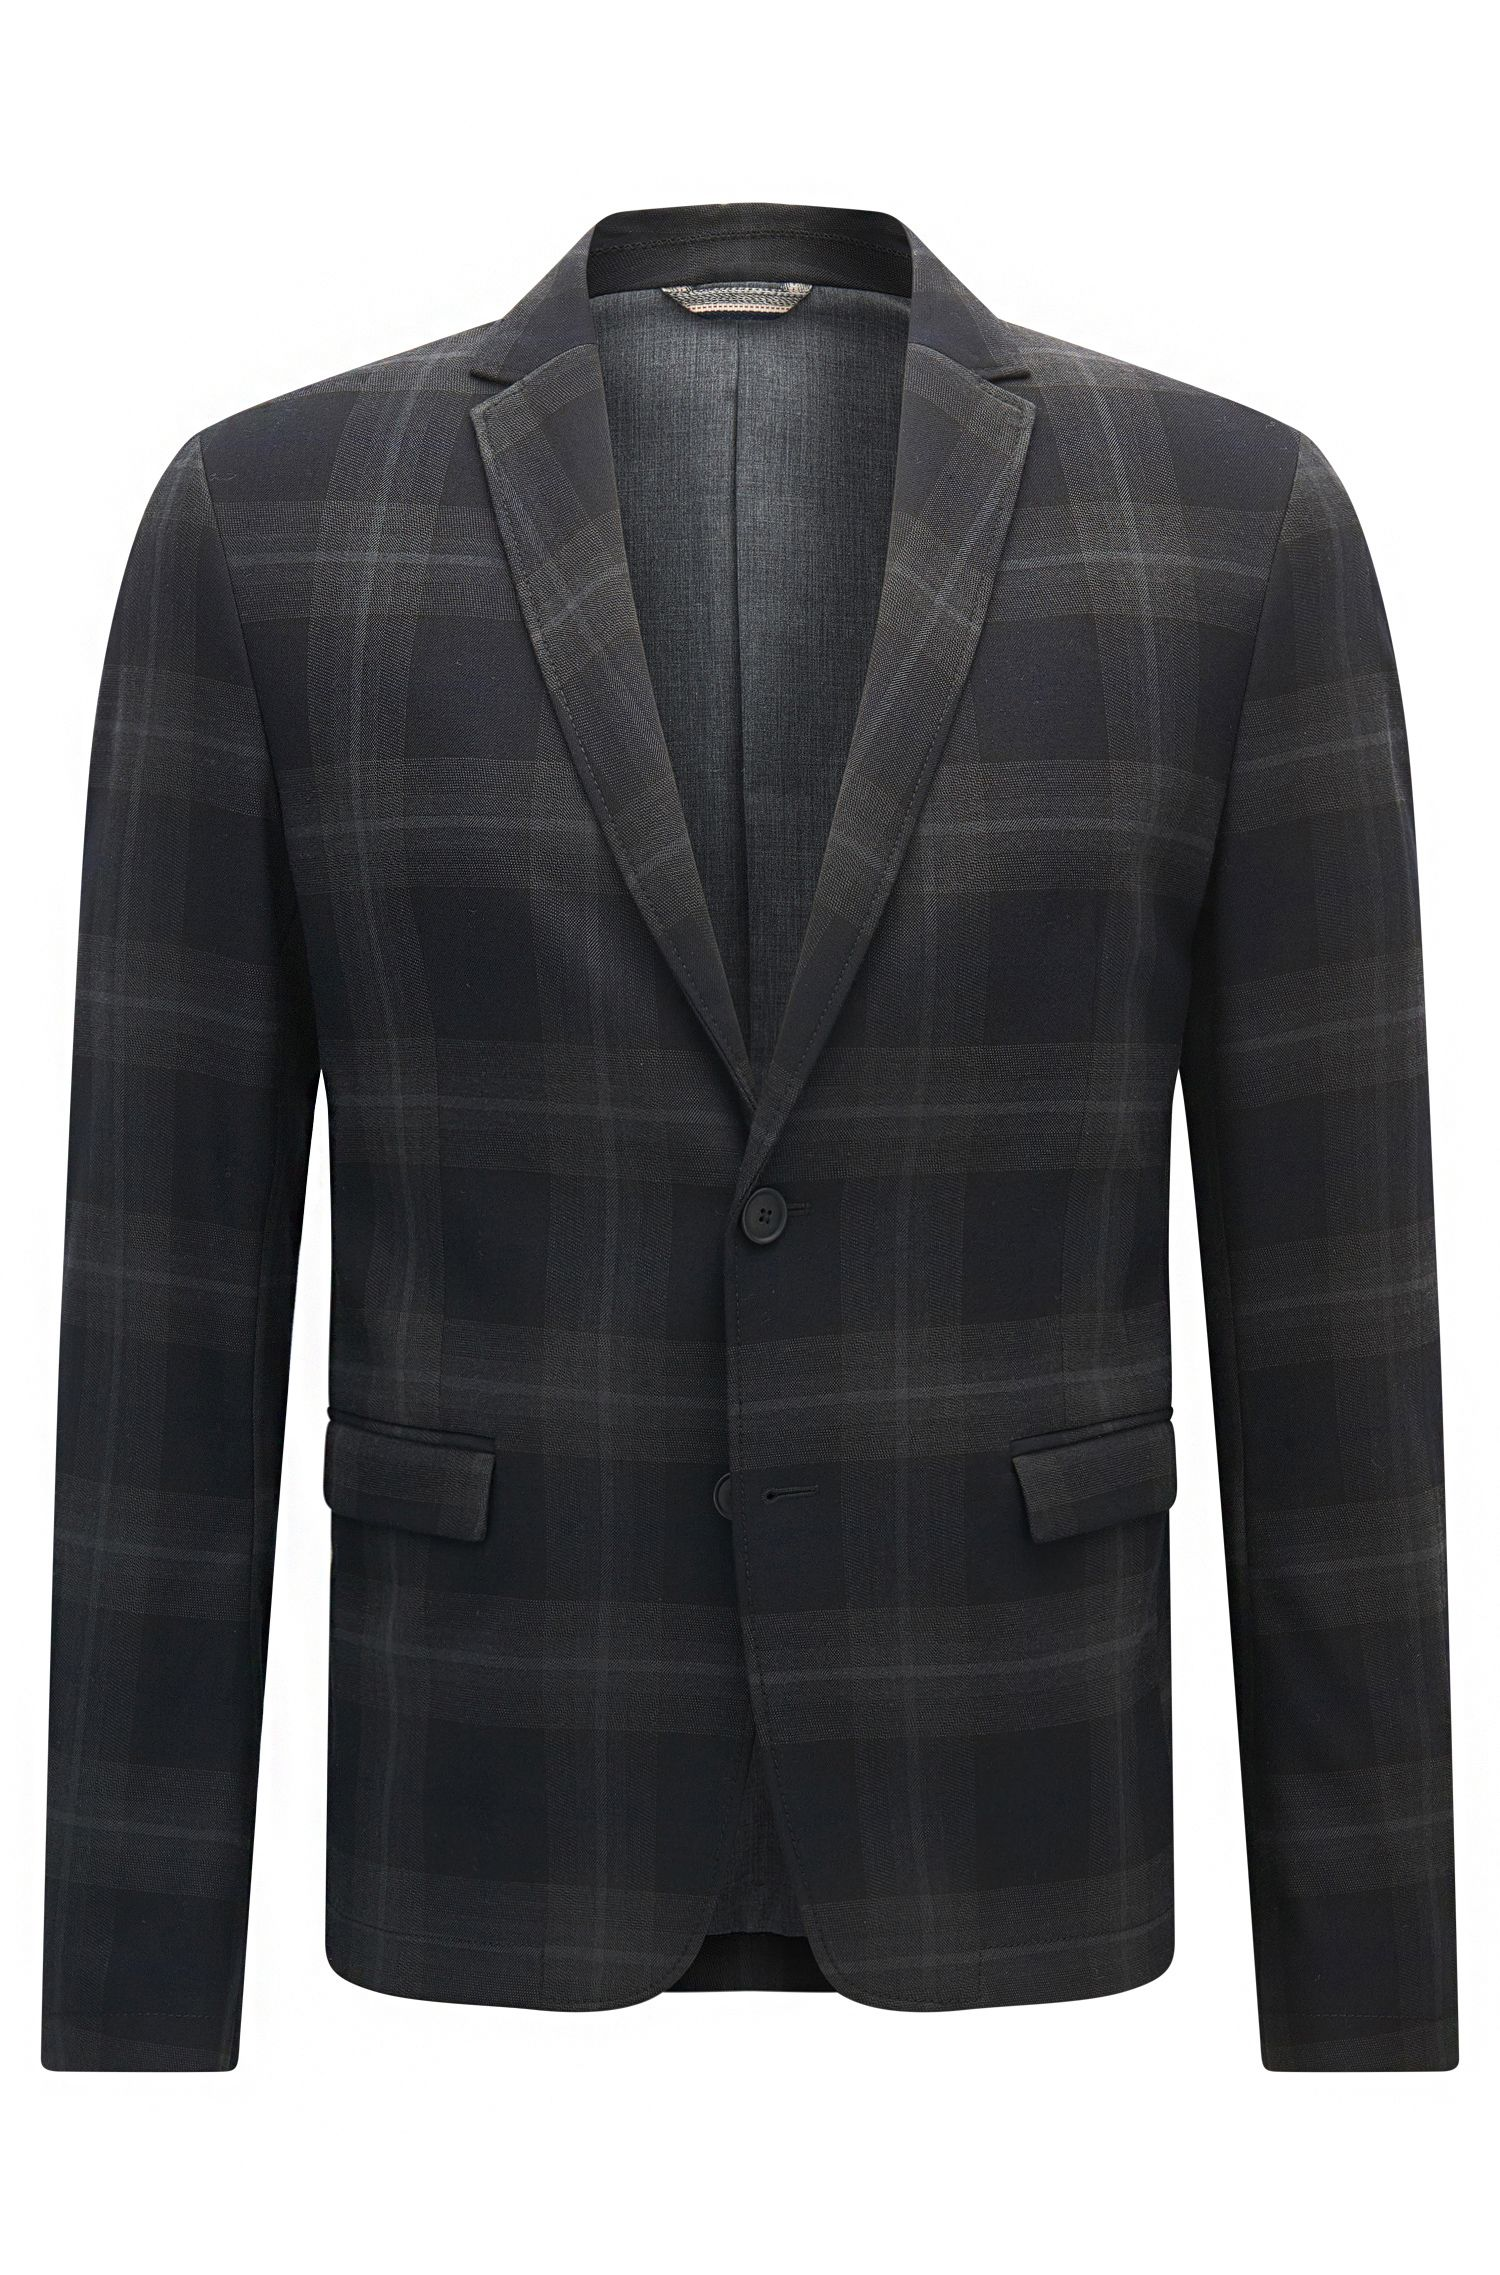 Plaid Twill Sport Coat, Slim Fit | Benestretch BS